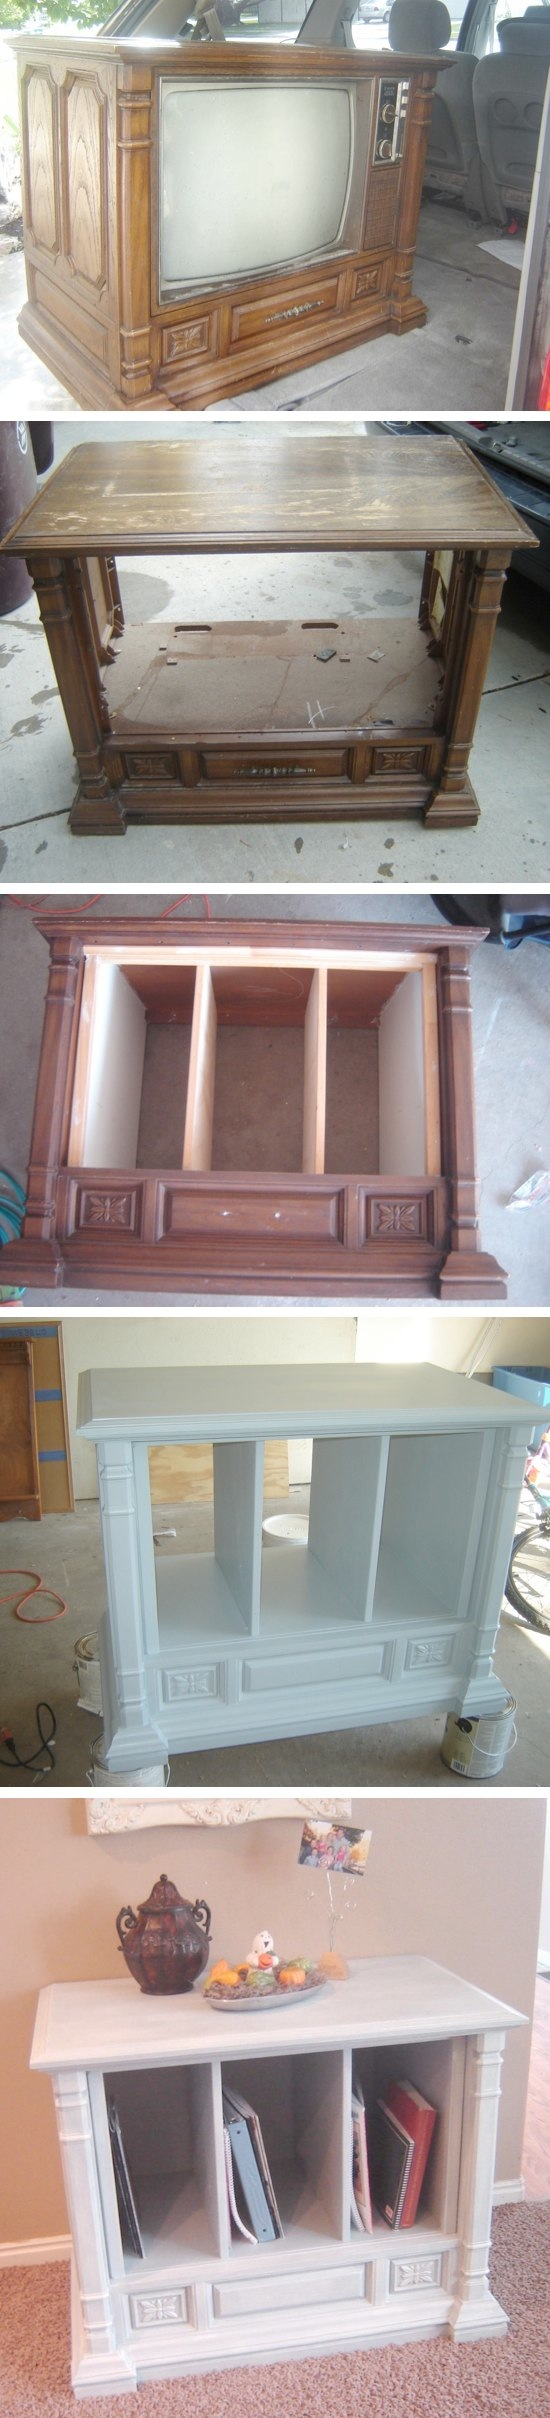 An old TV turned into a living room hutch!